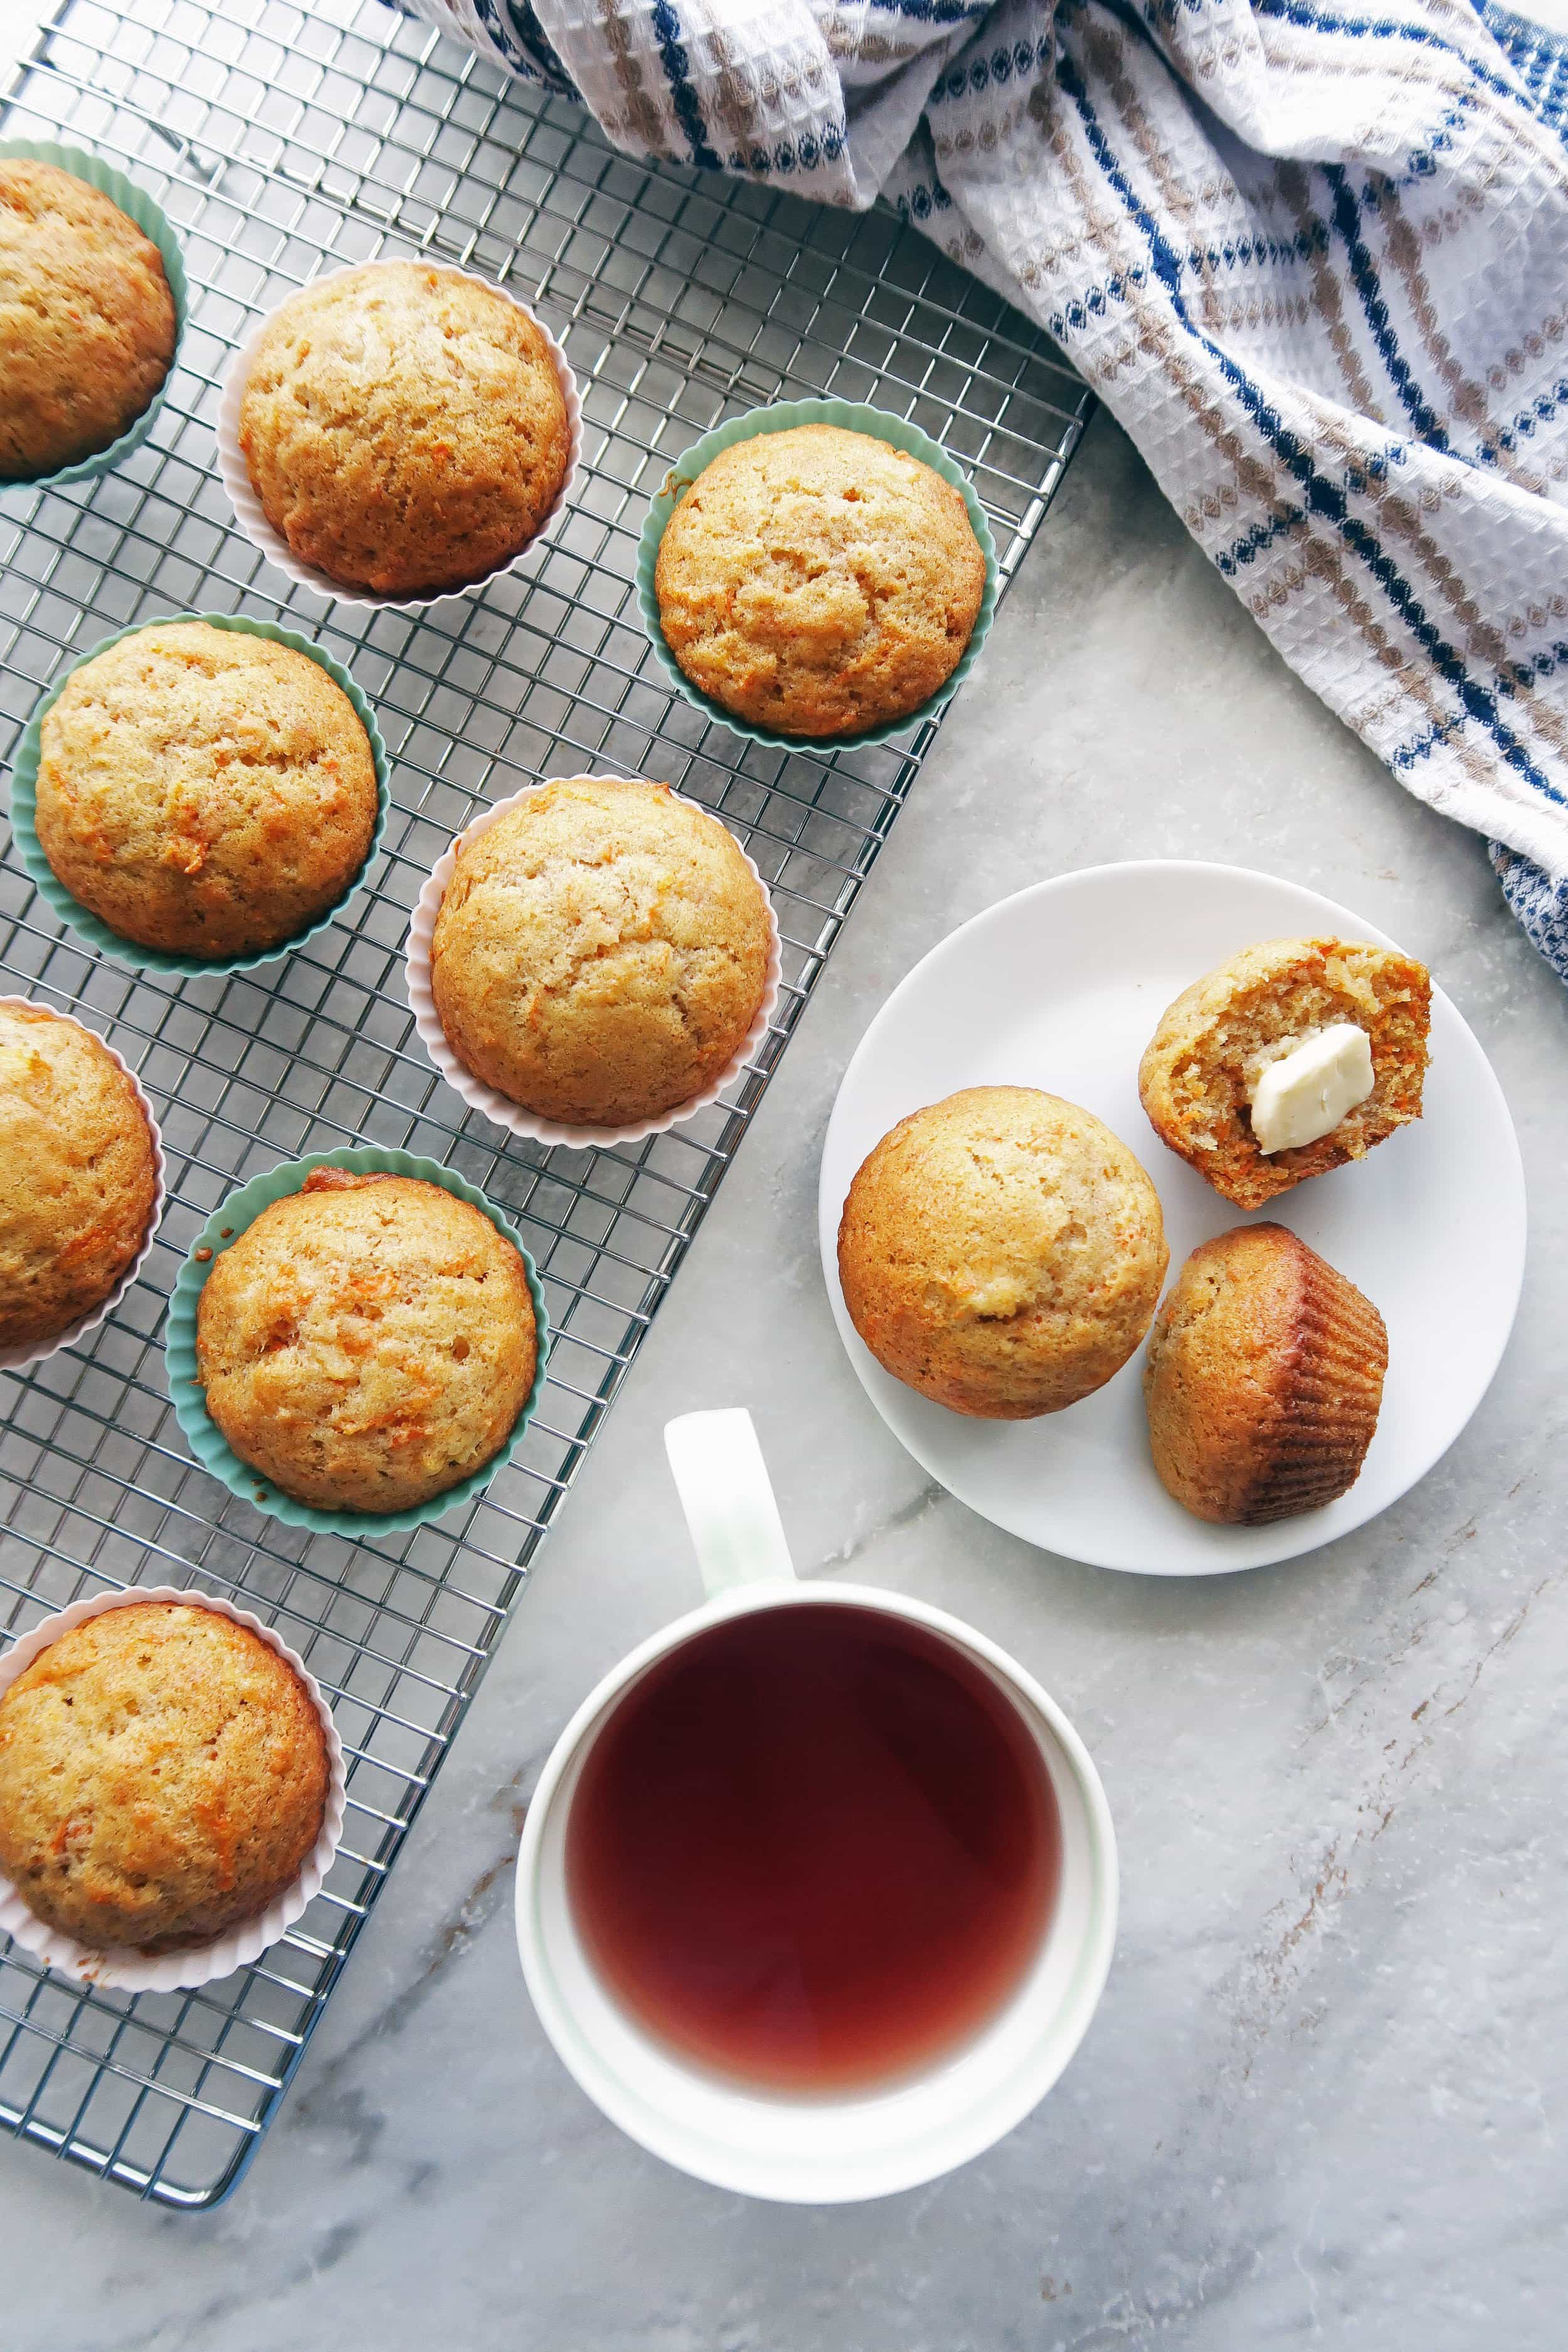 Overhead view of two carrot Pineapple Muffins on small white plate, muffins on a cooling rack, and a cup of tea.